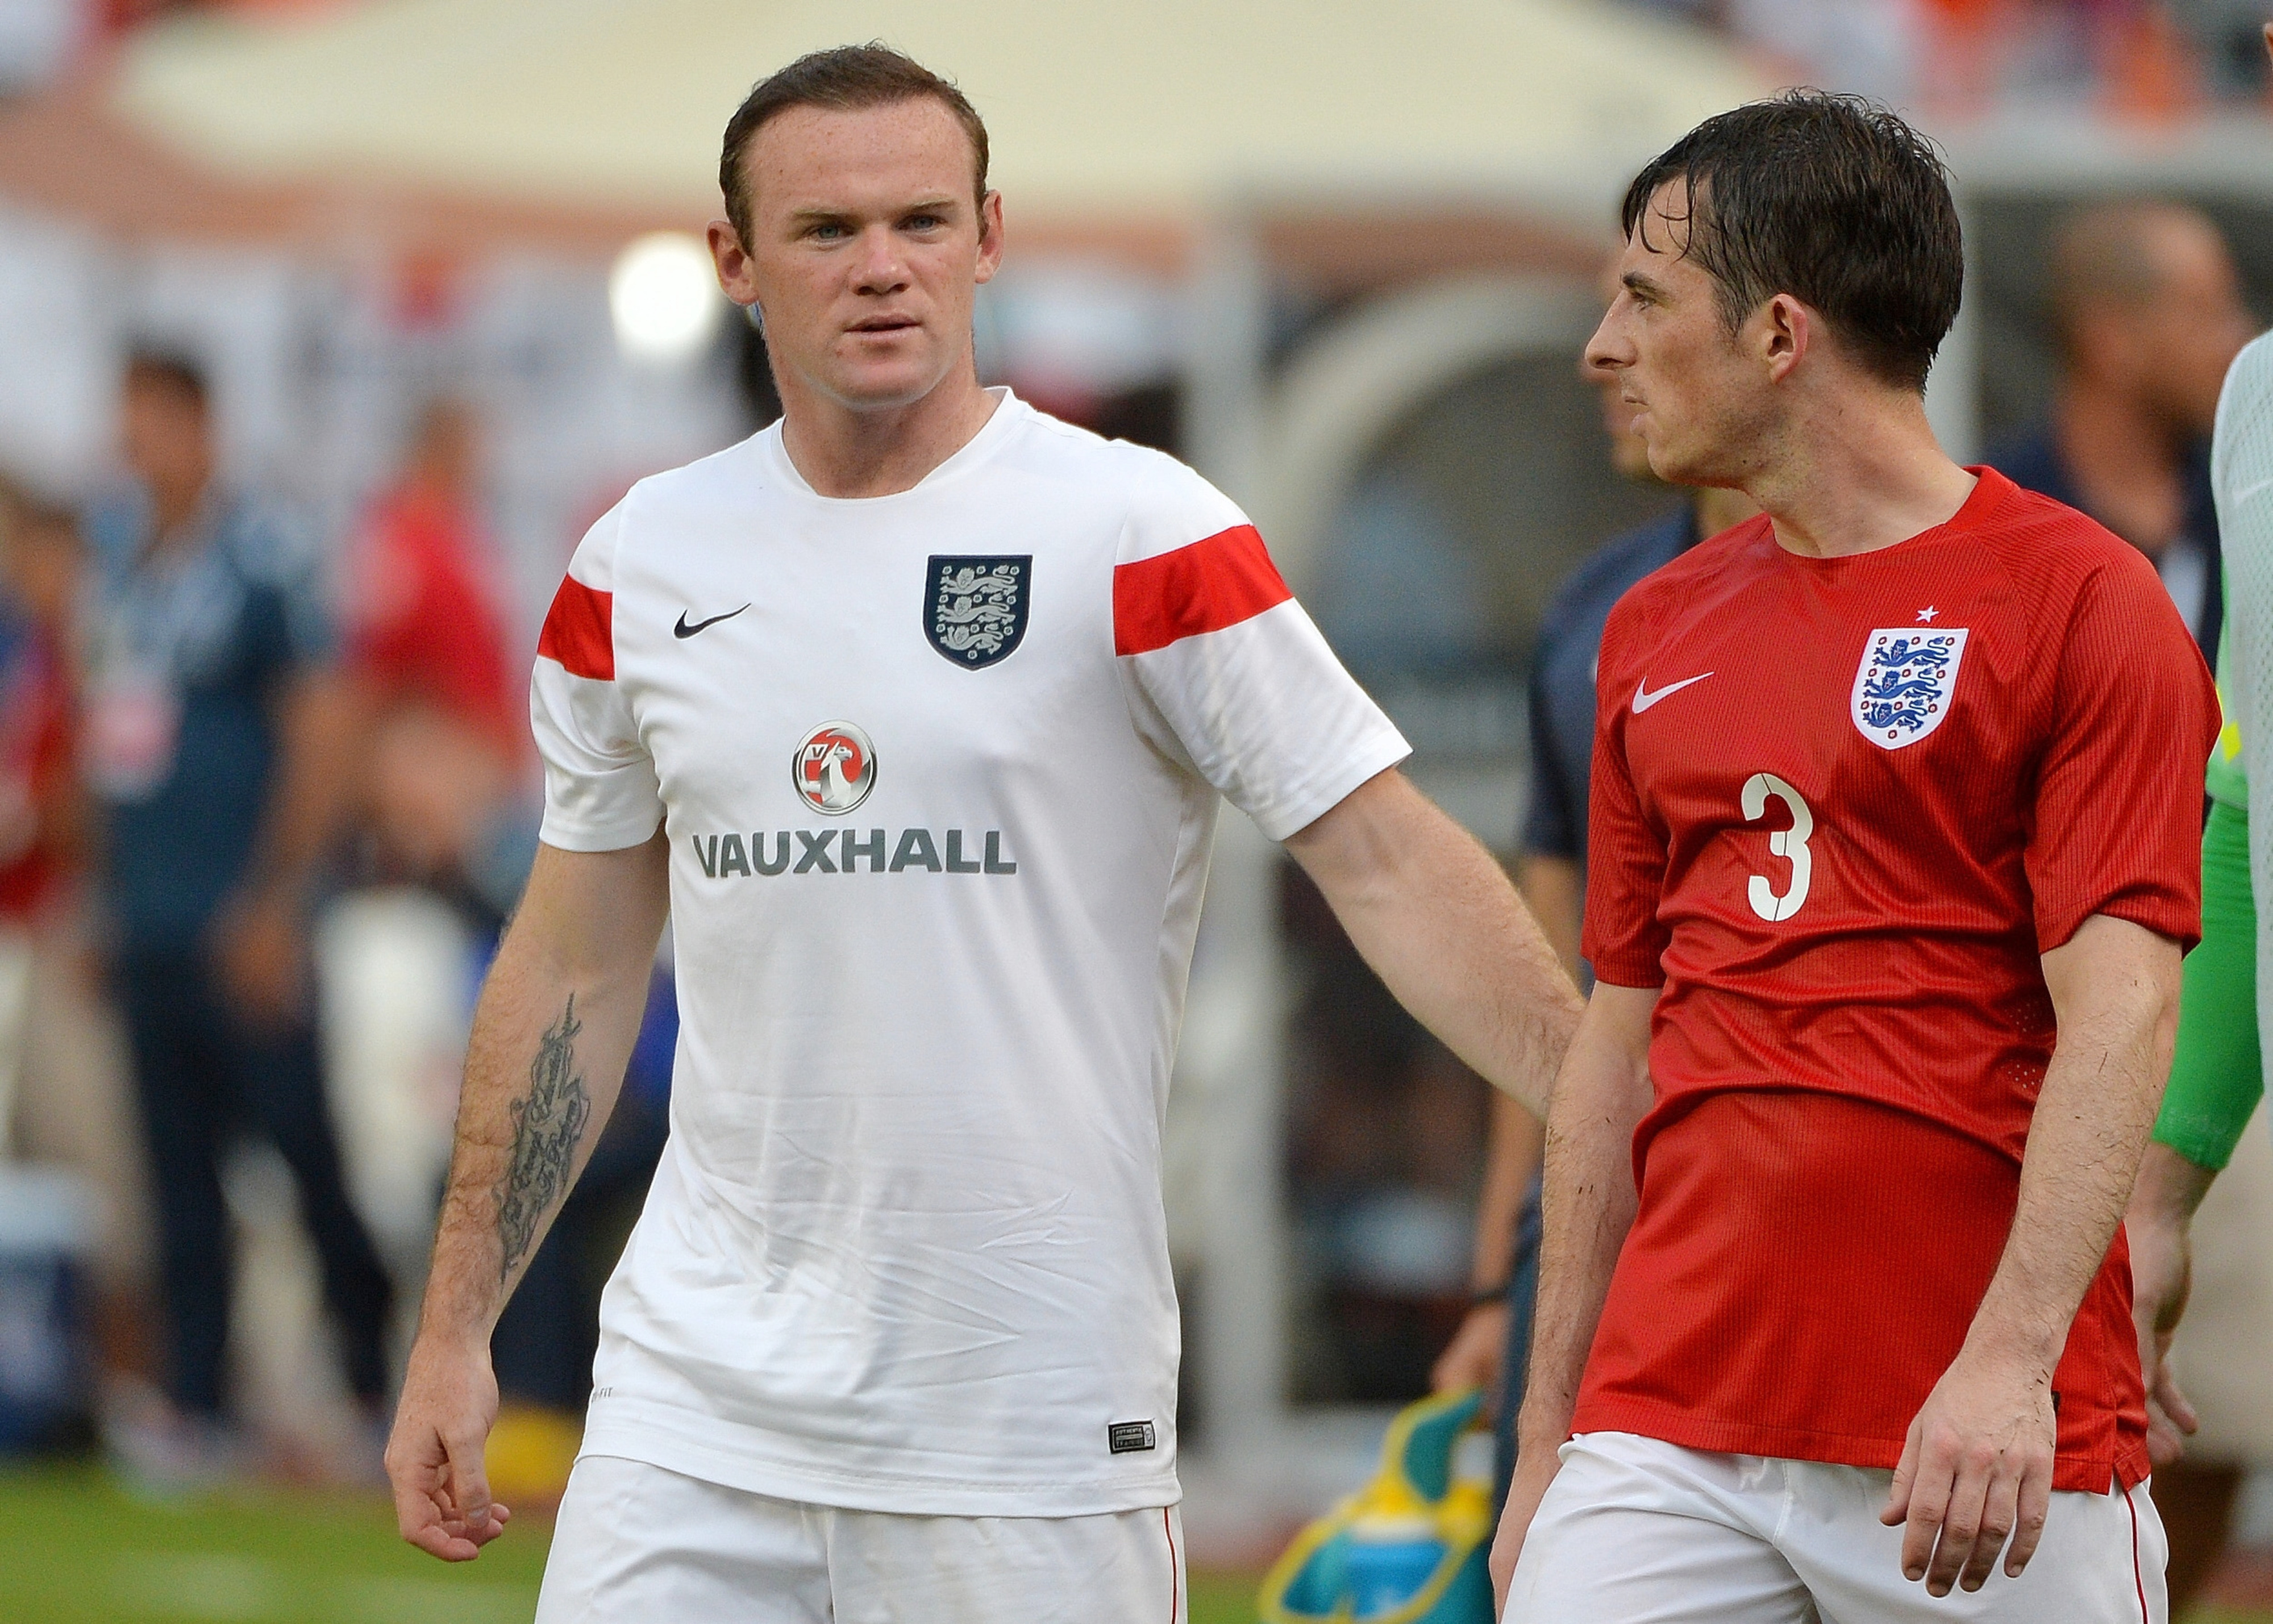 Leighton Baines and Wayne Rooney lead England against Italy today.